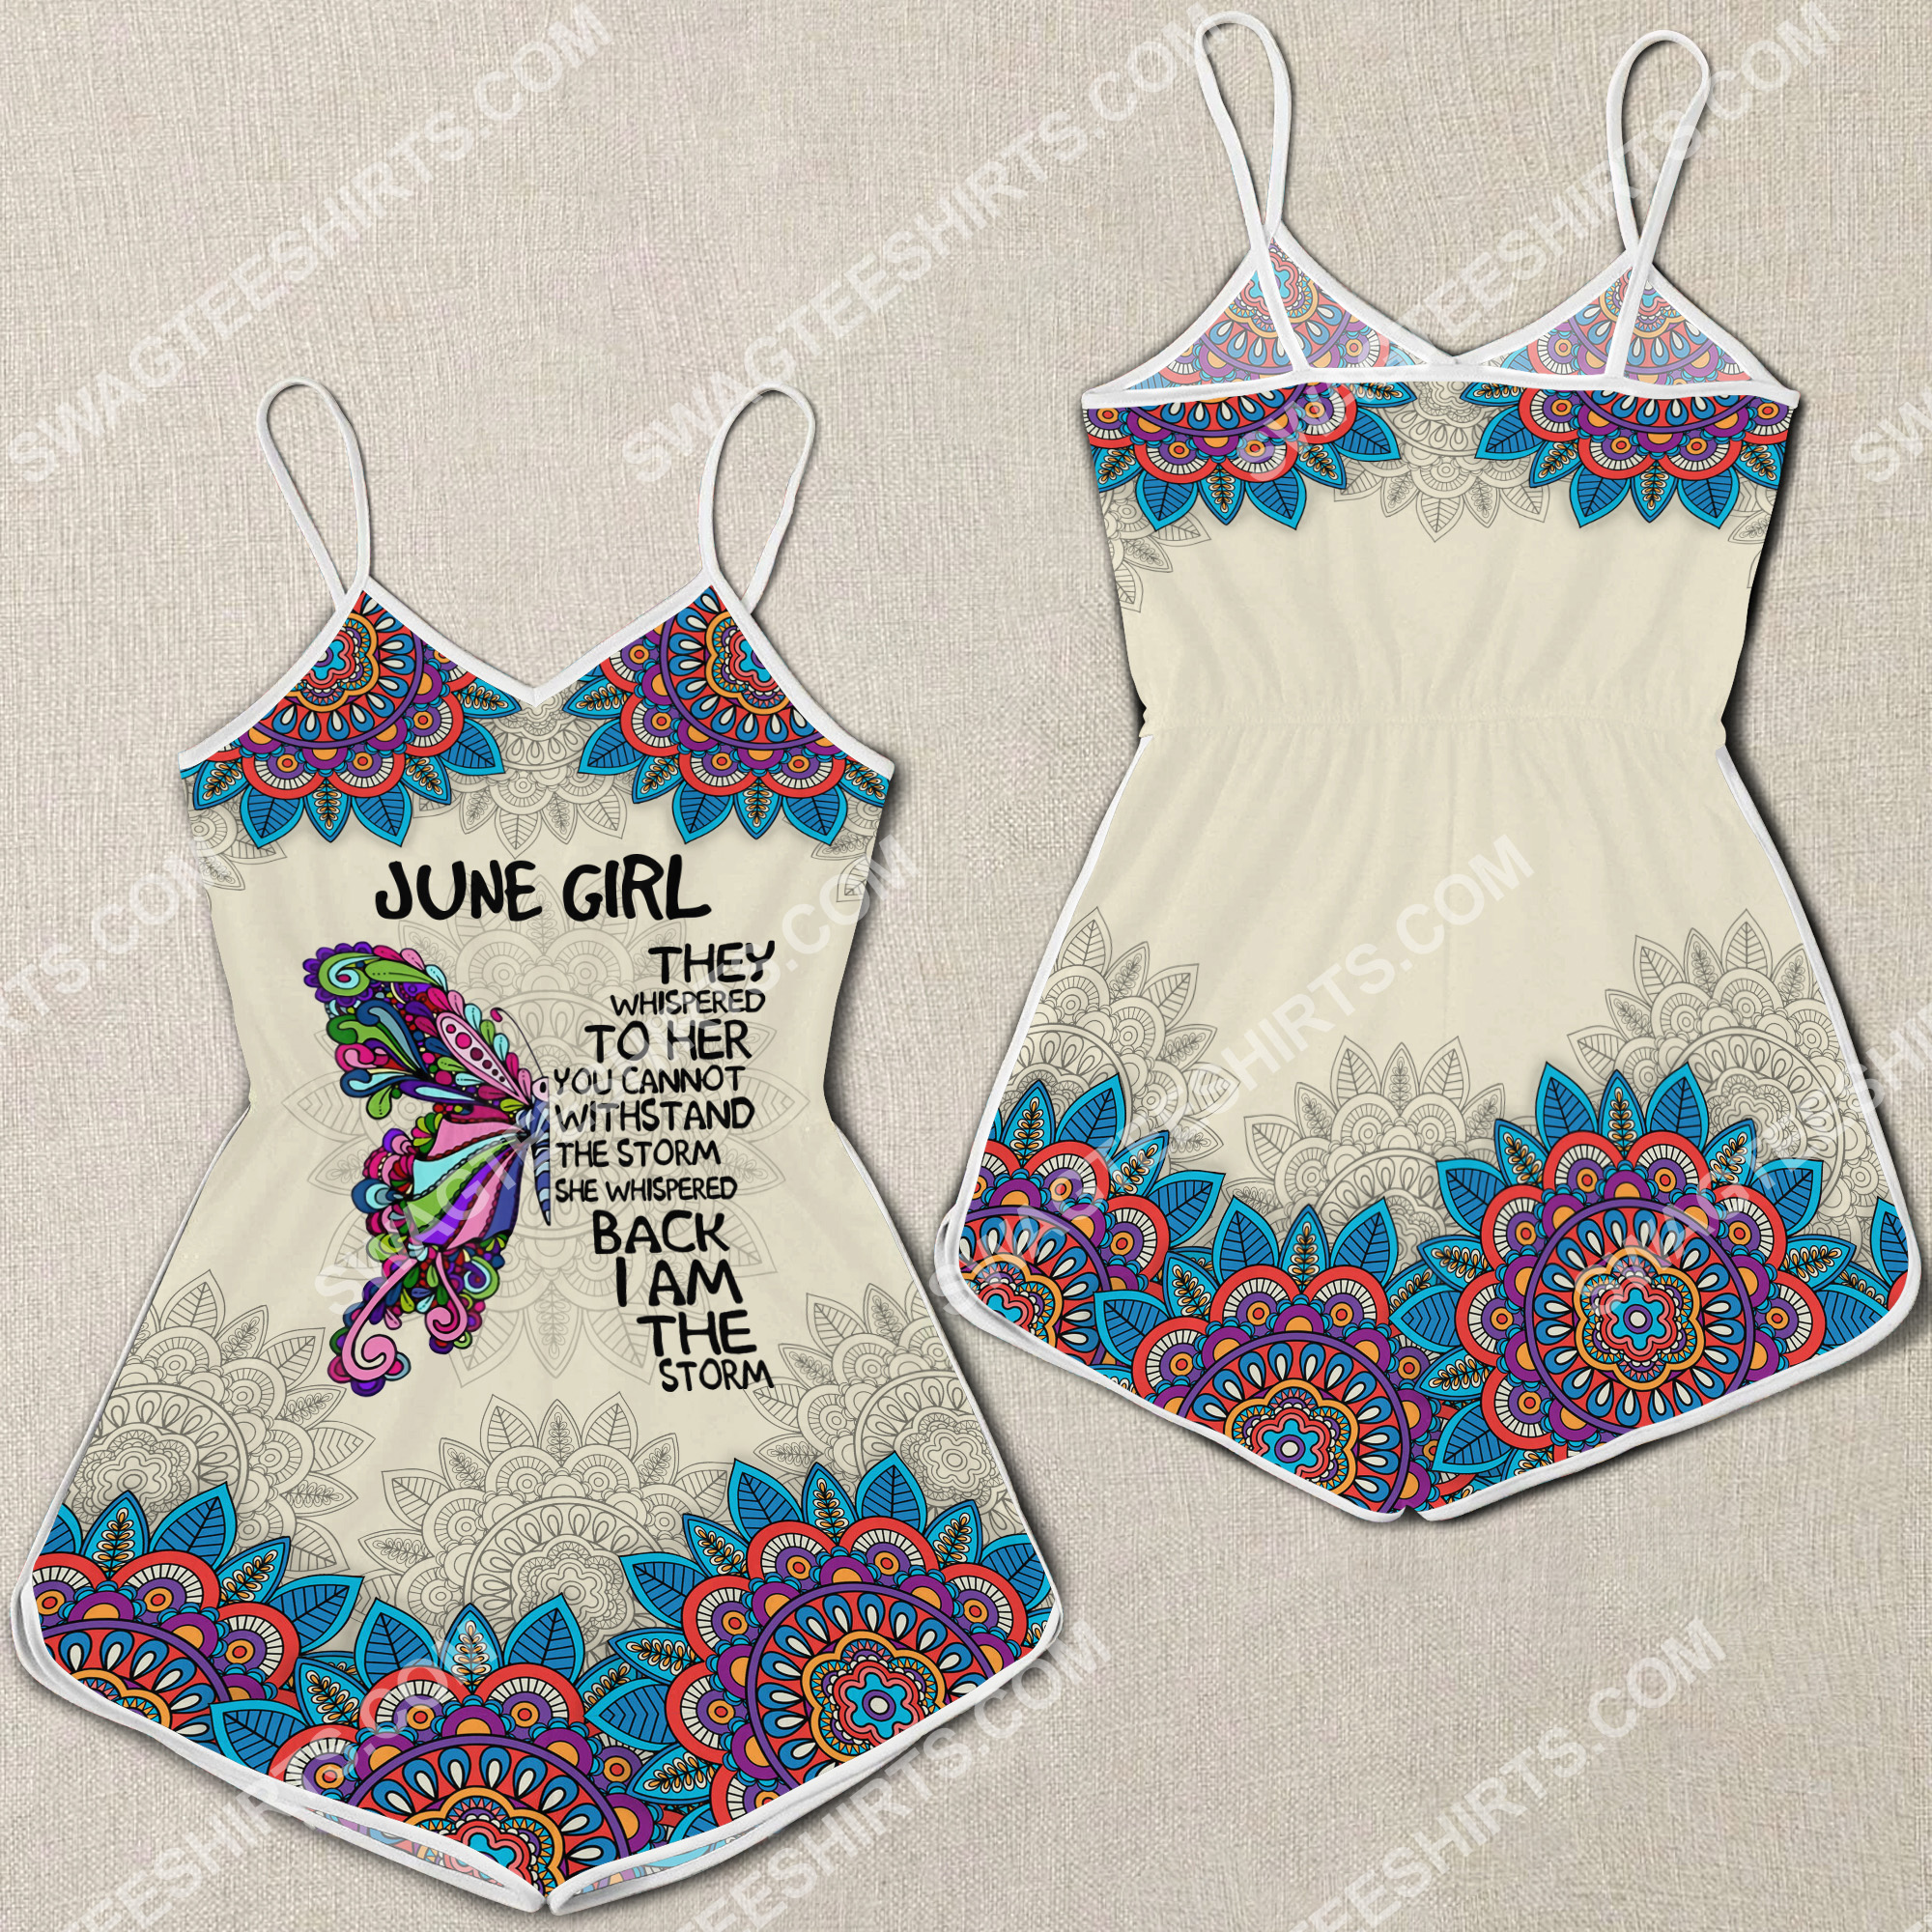 june girl they whispered to her you cannot withstand the storm rompers 2(1) - Copy